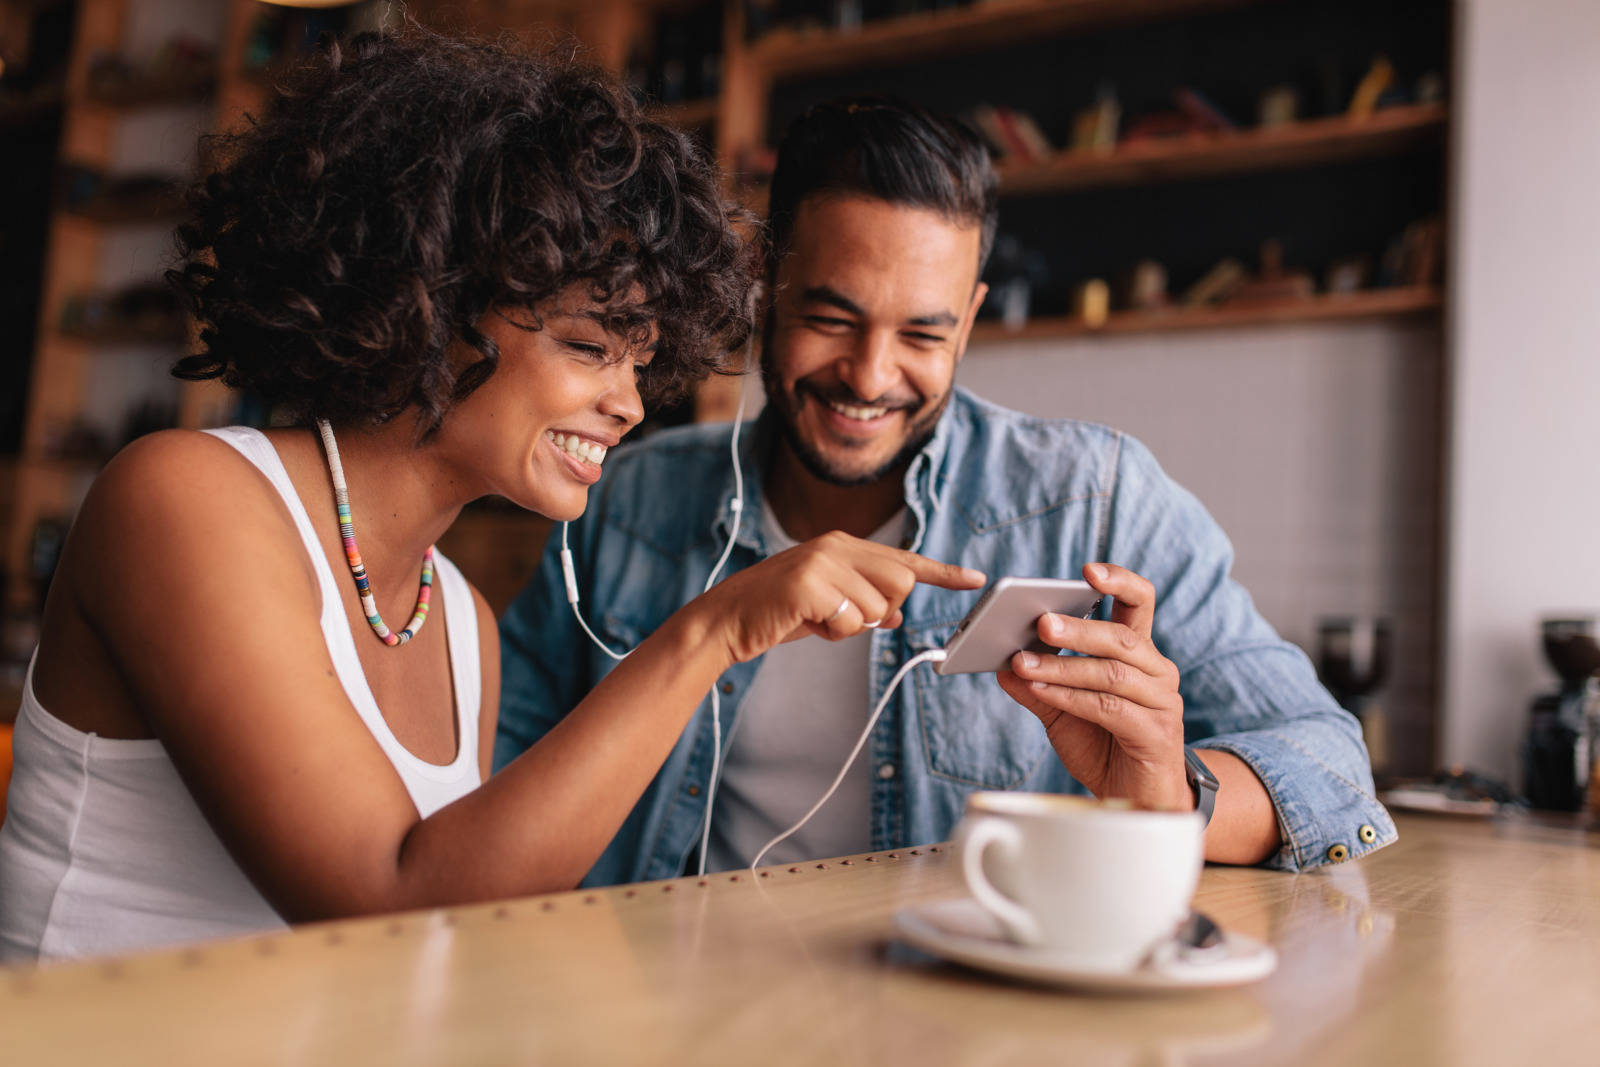 Smiling young couple with earphones sitting at coffee shop looking at mobile phone. Young man and woman at cafe using smart phone.